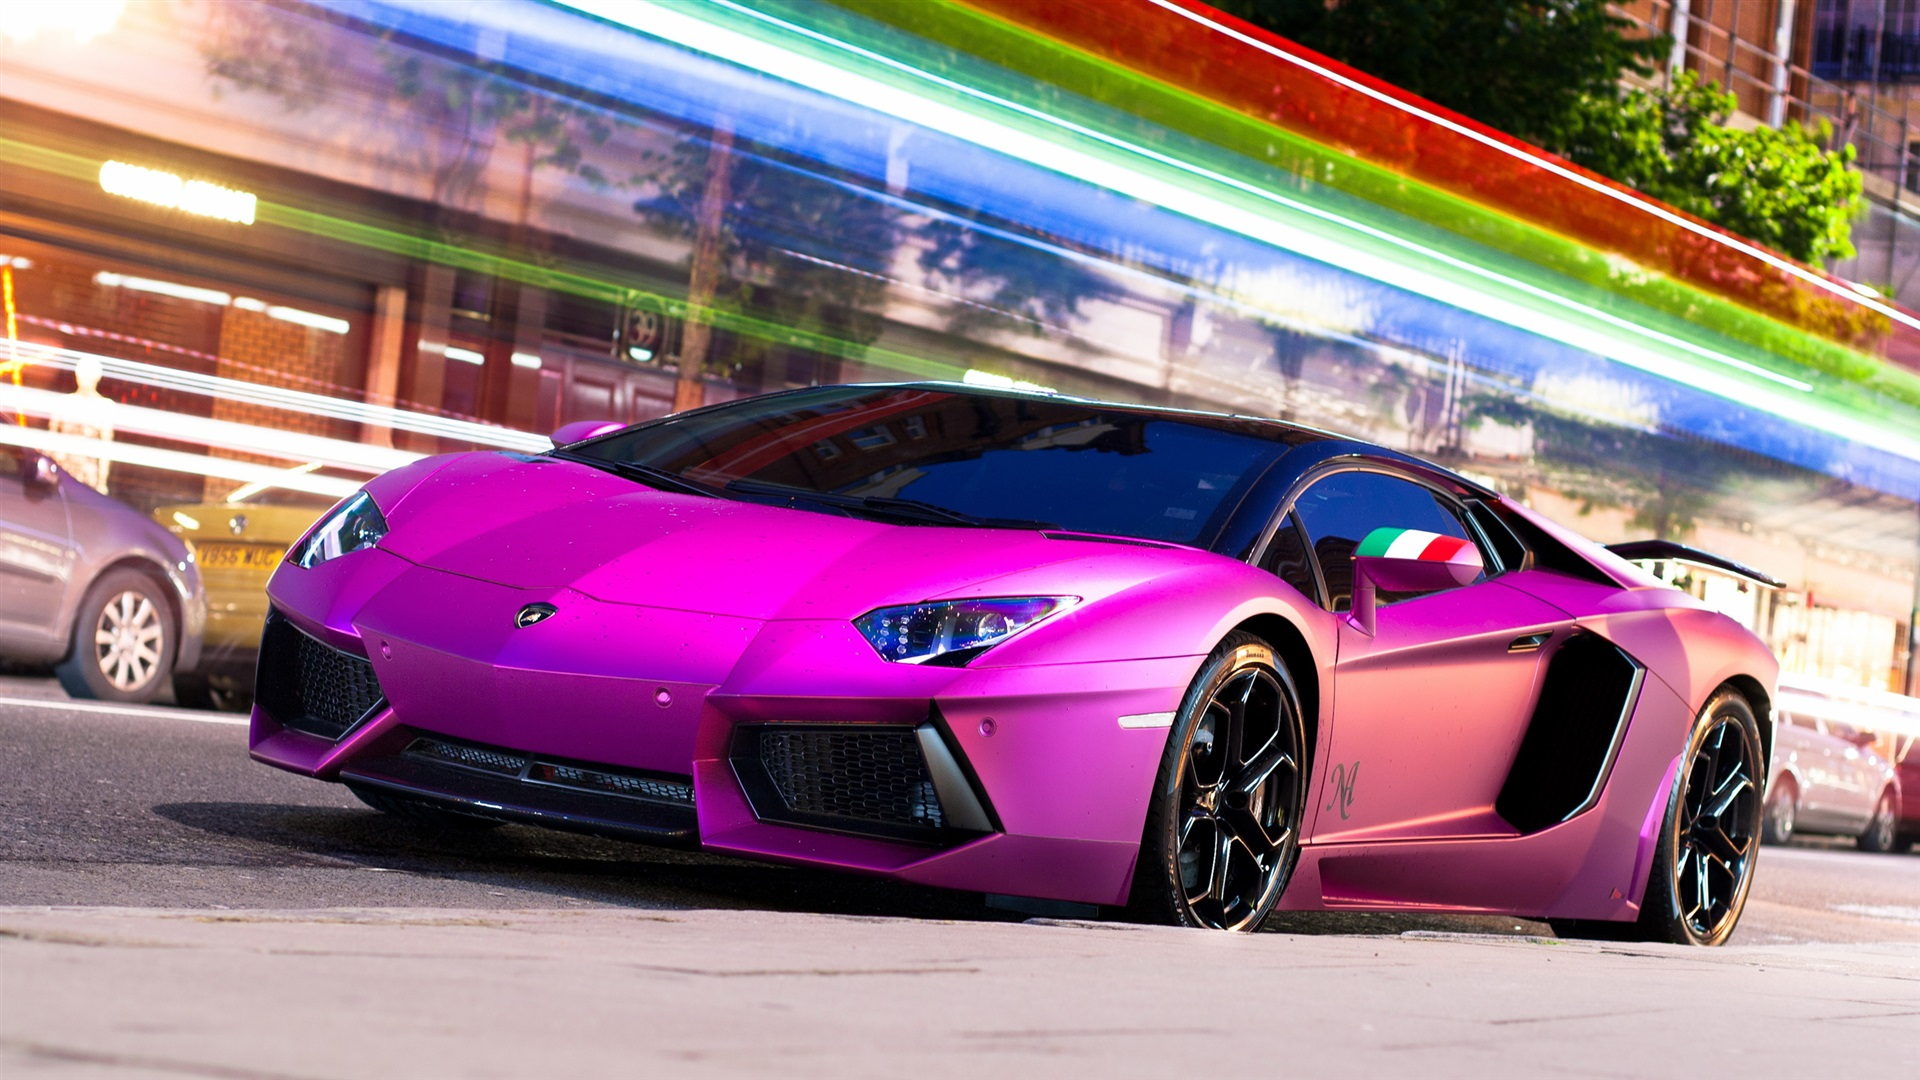 Wallpaper Purple Lamborghini Aventador Lp700 4 Supercar 2560x1440